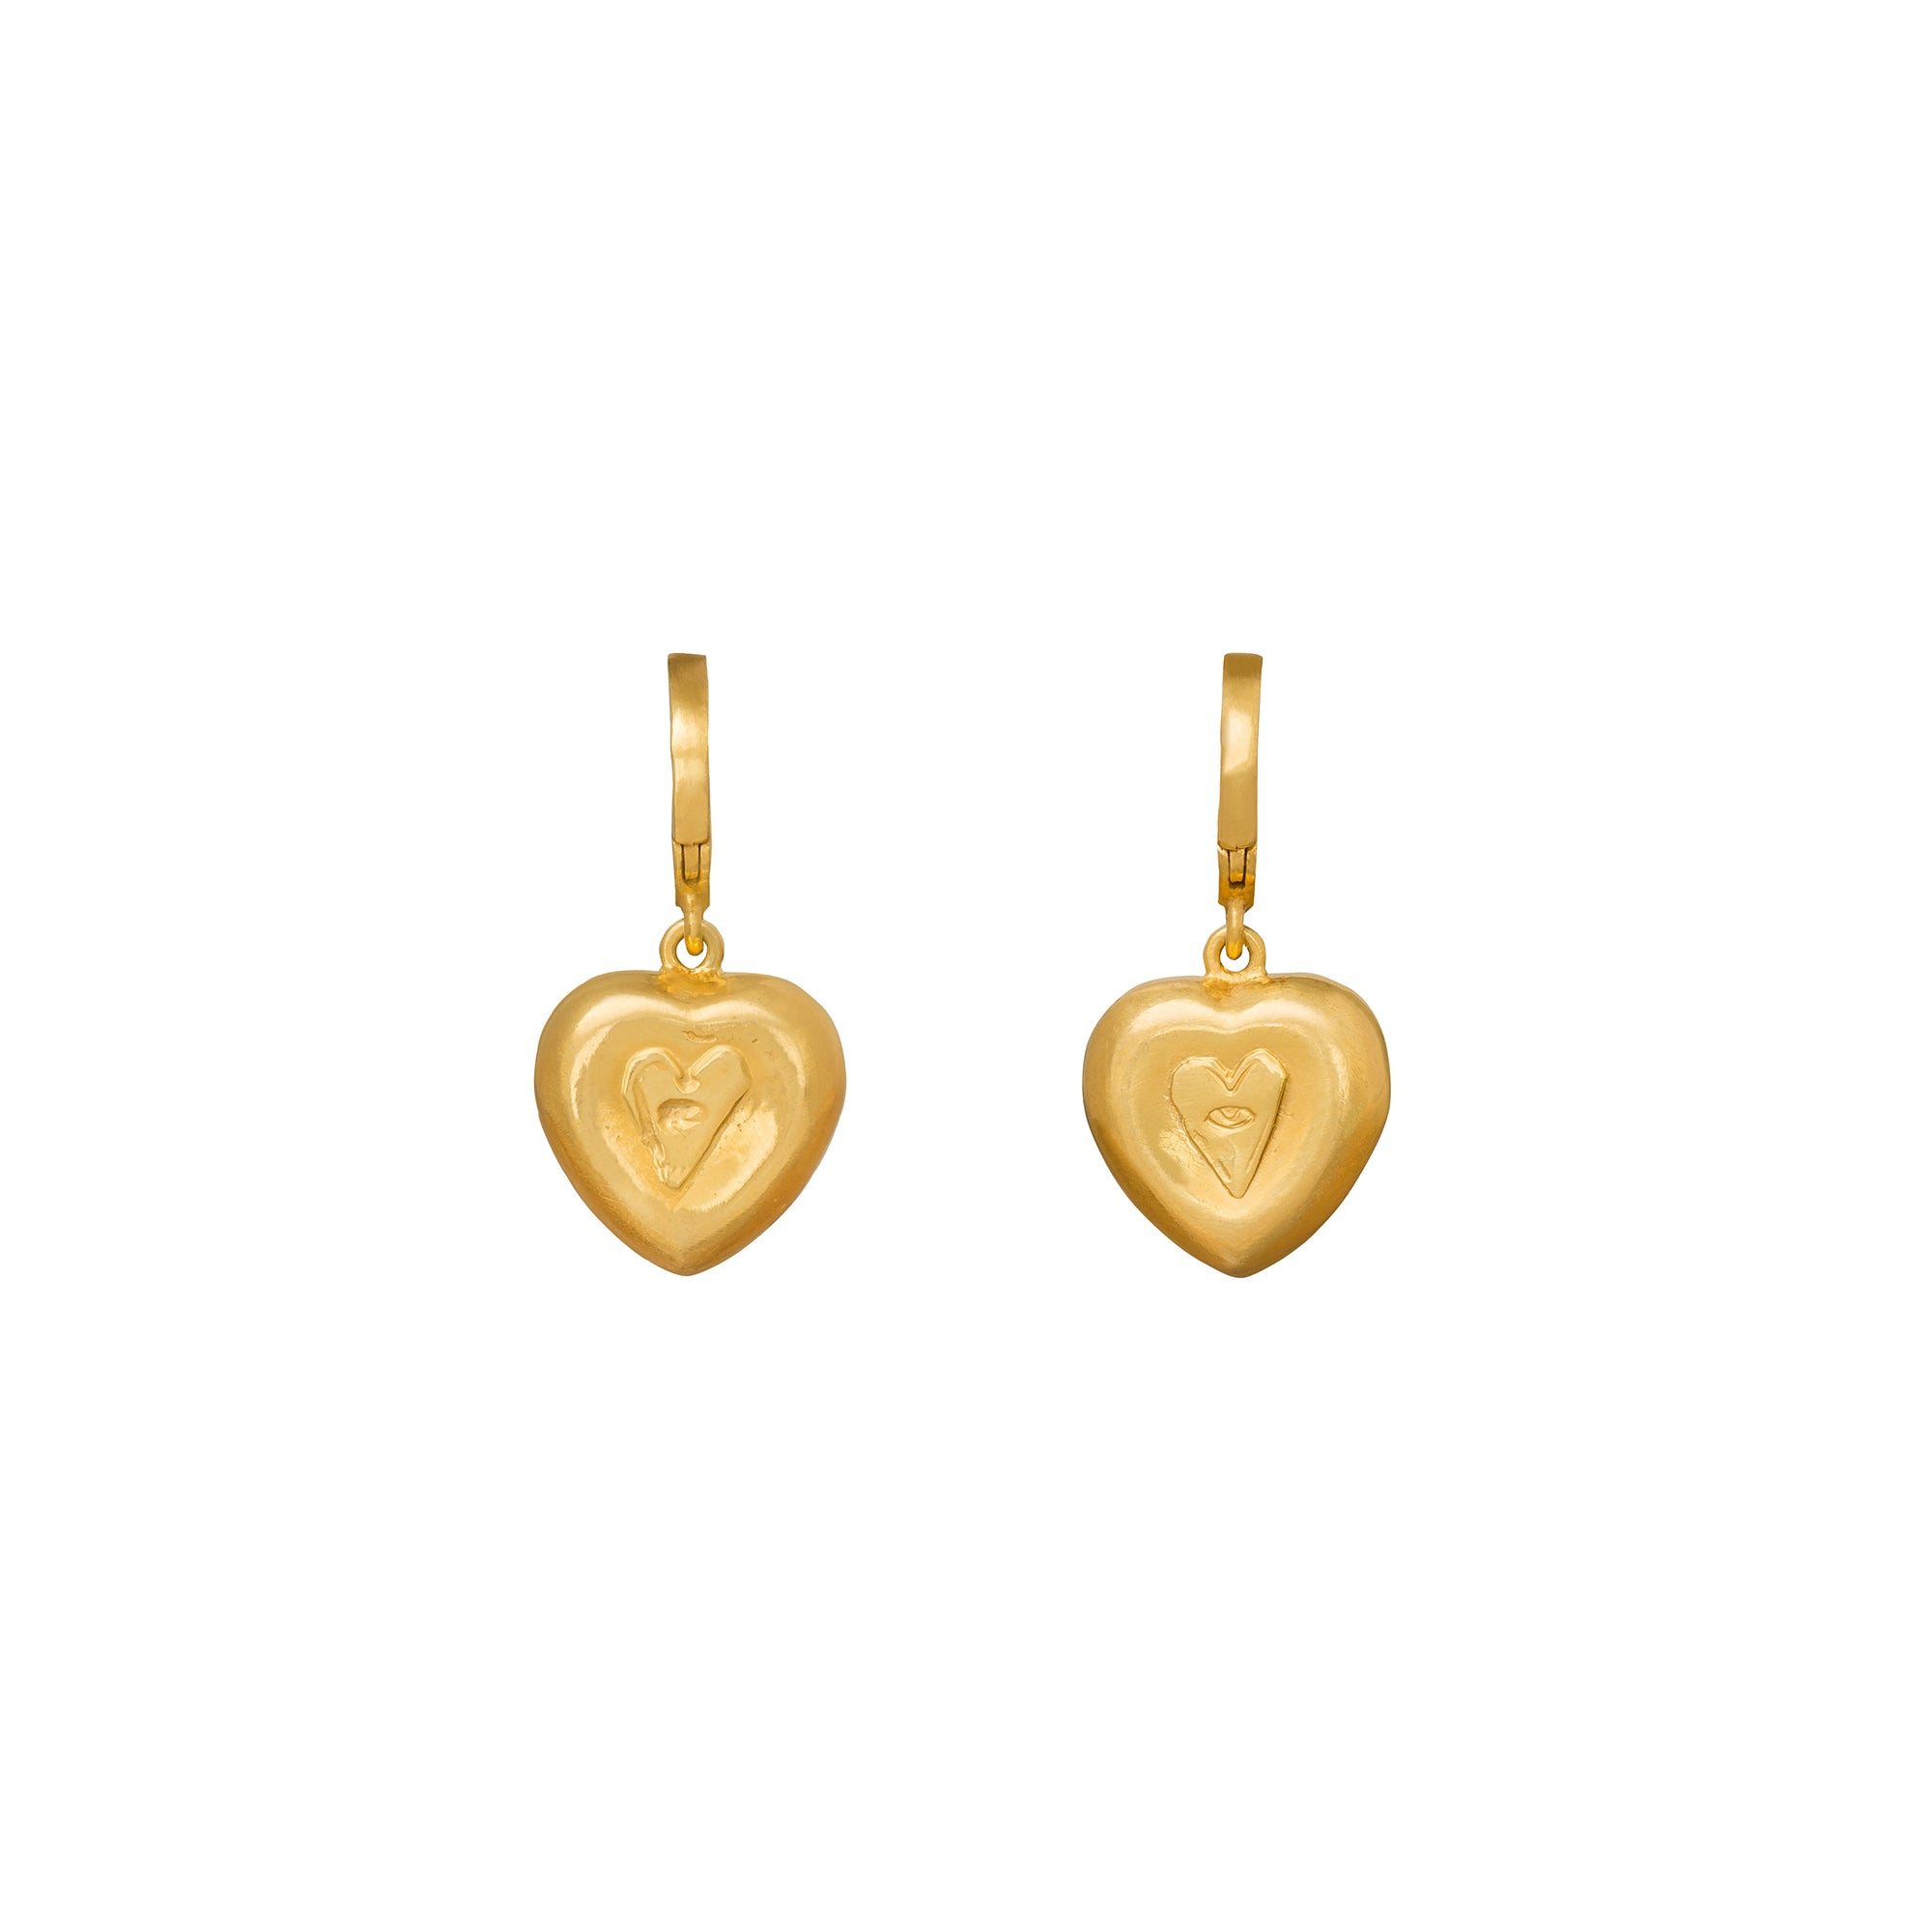 Puffy Heart Huggies - Christina Alexiou - Earrings | Broken English Jewelry